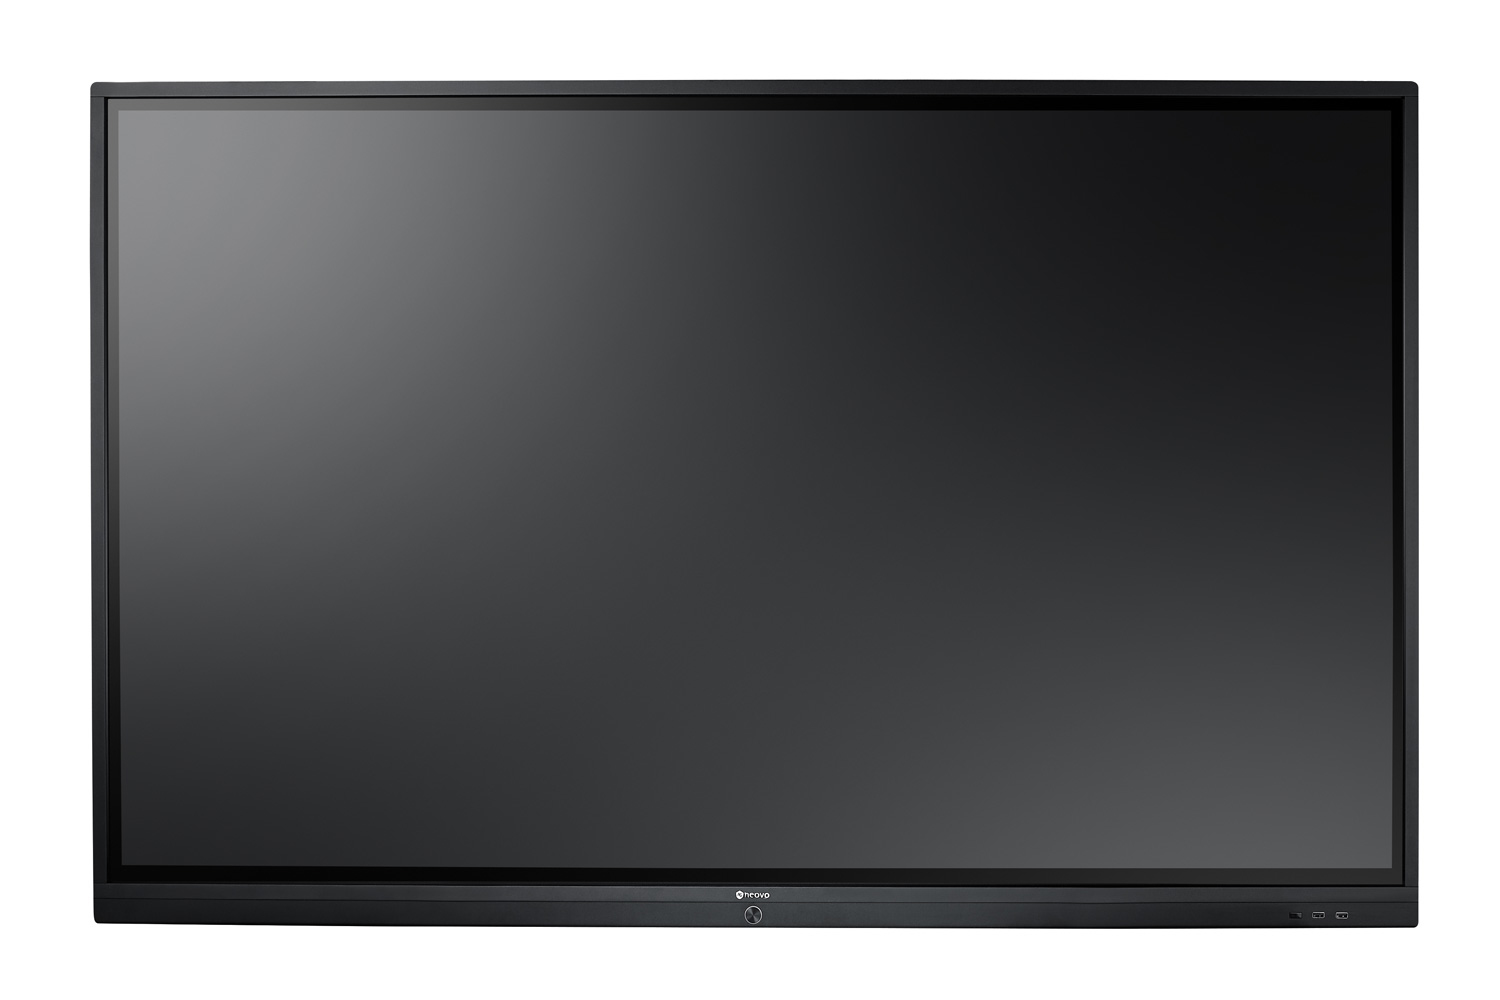 AG Neovo IFP-6502 touch screen monitor 163.8 cm 64.5